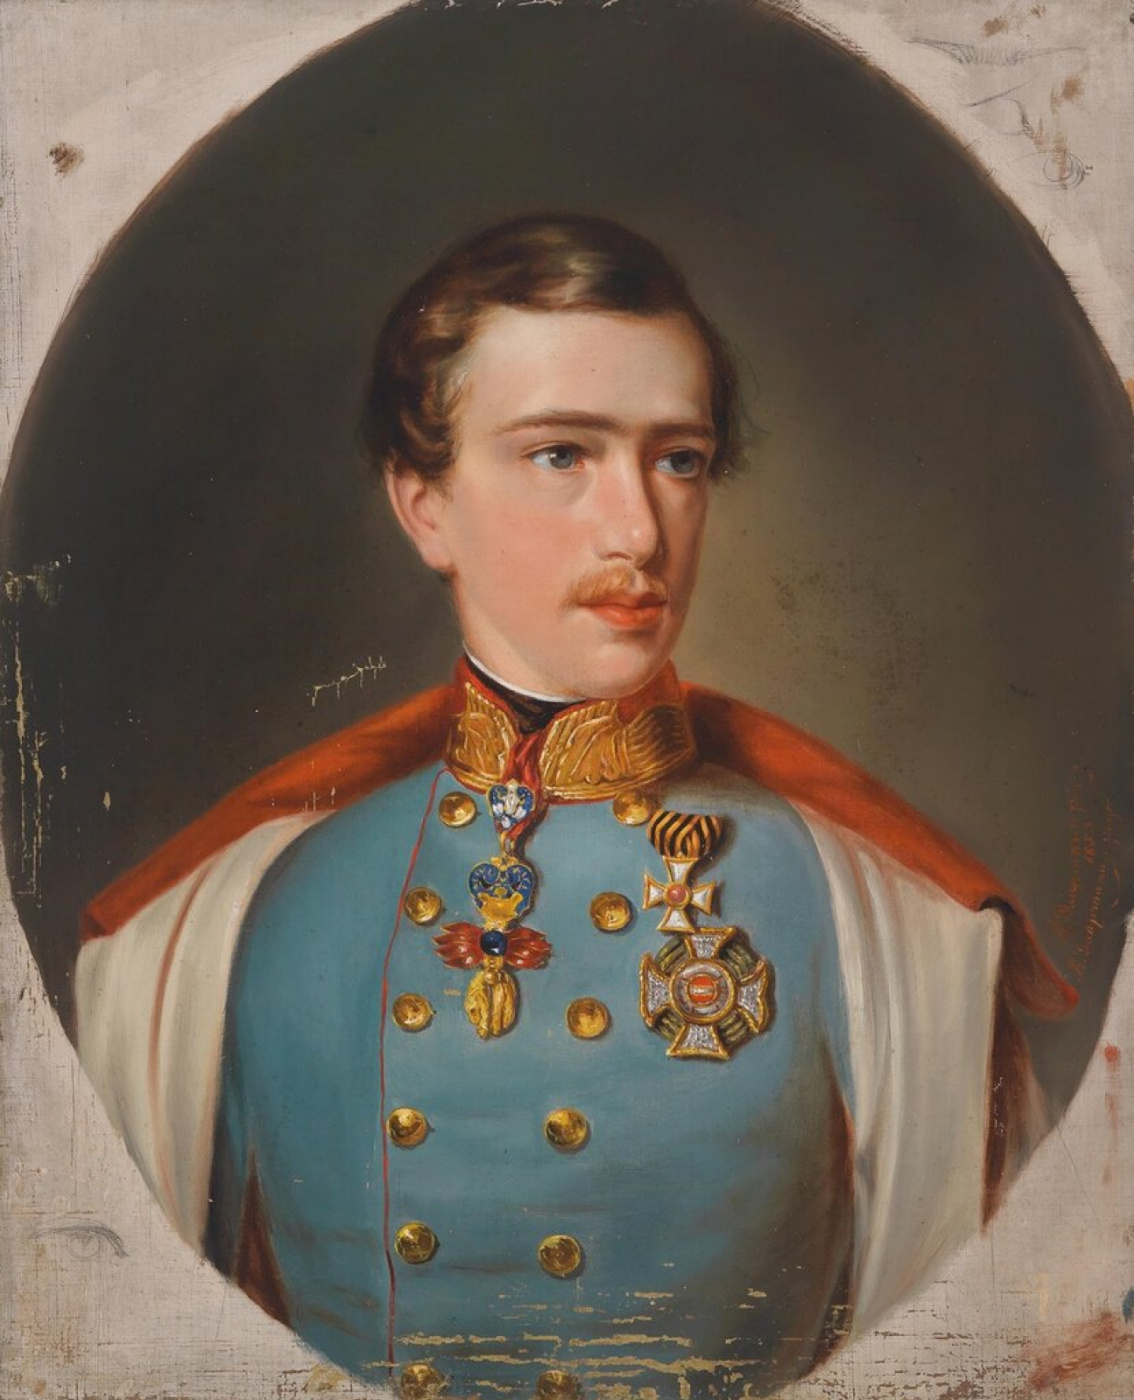 Unknown artist. Young Emperor Franz Joseph I in uniform